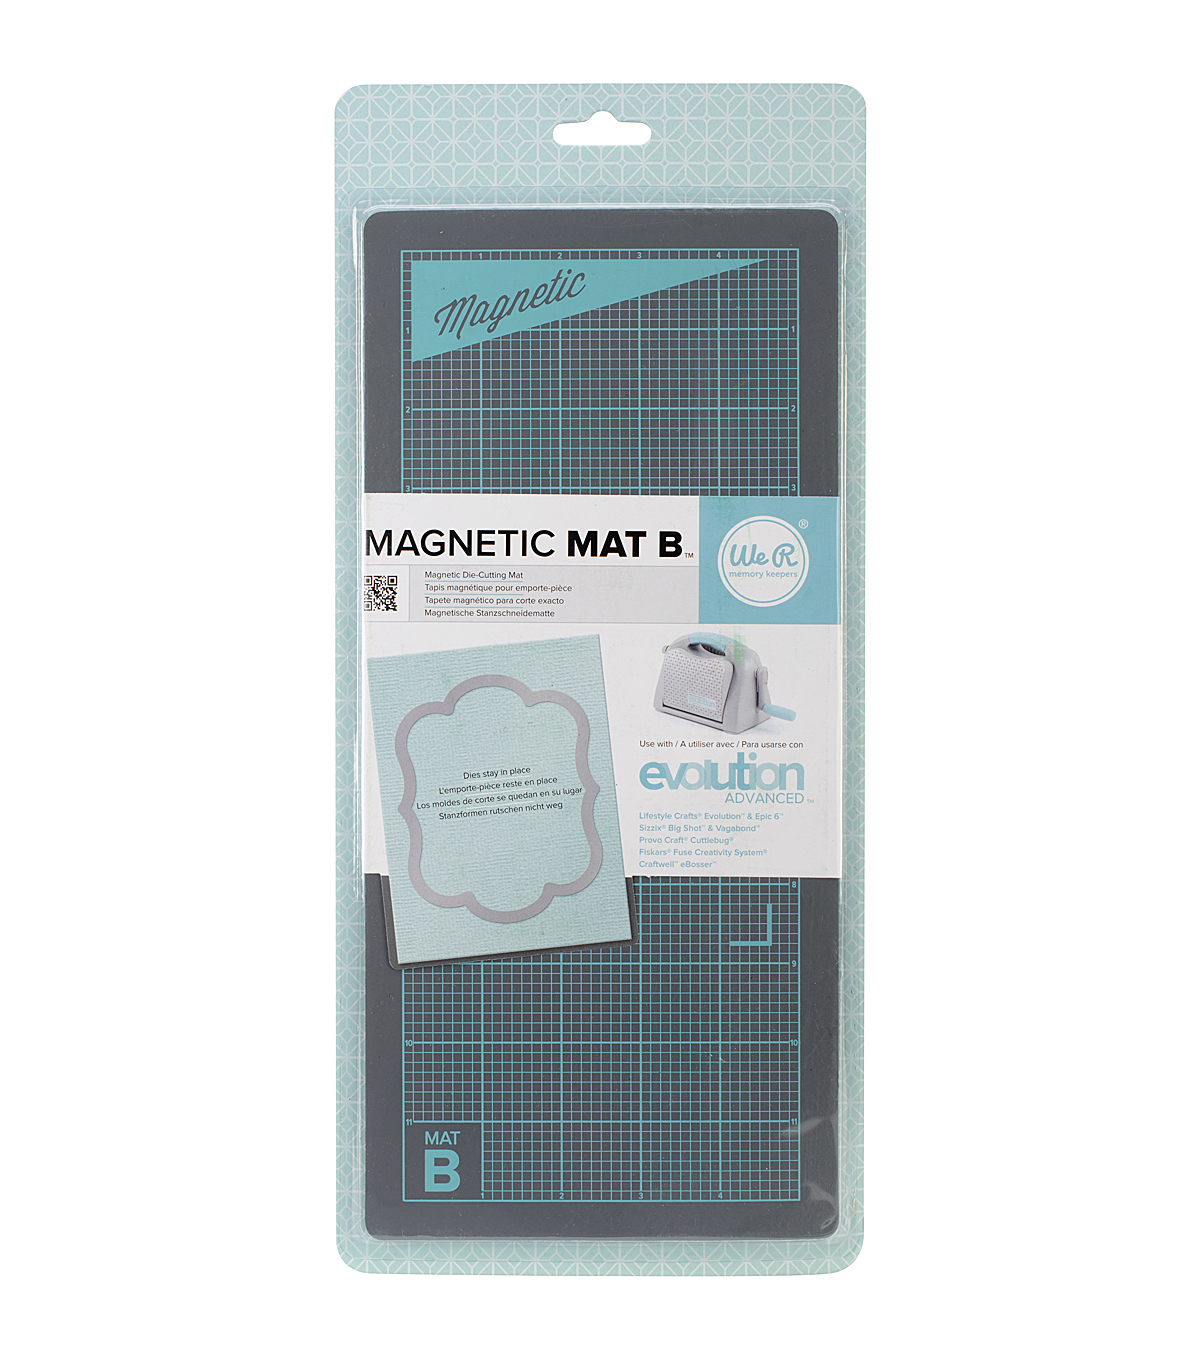 We R Memory keepers Magnetic Mat B For Use With Evolution Advanced